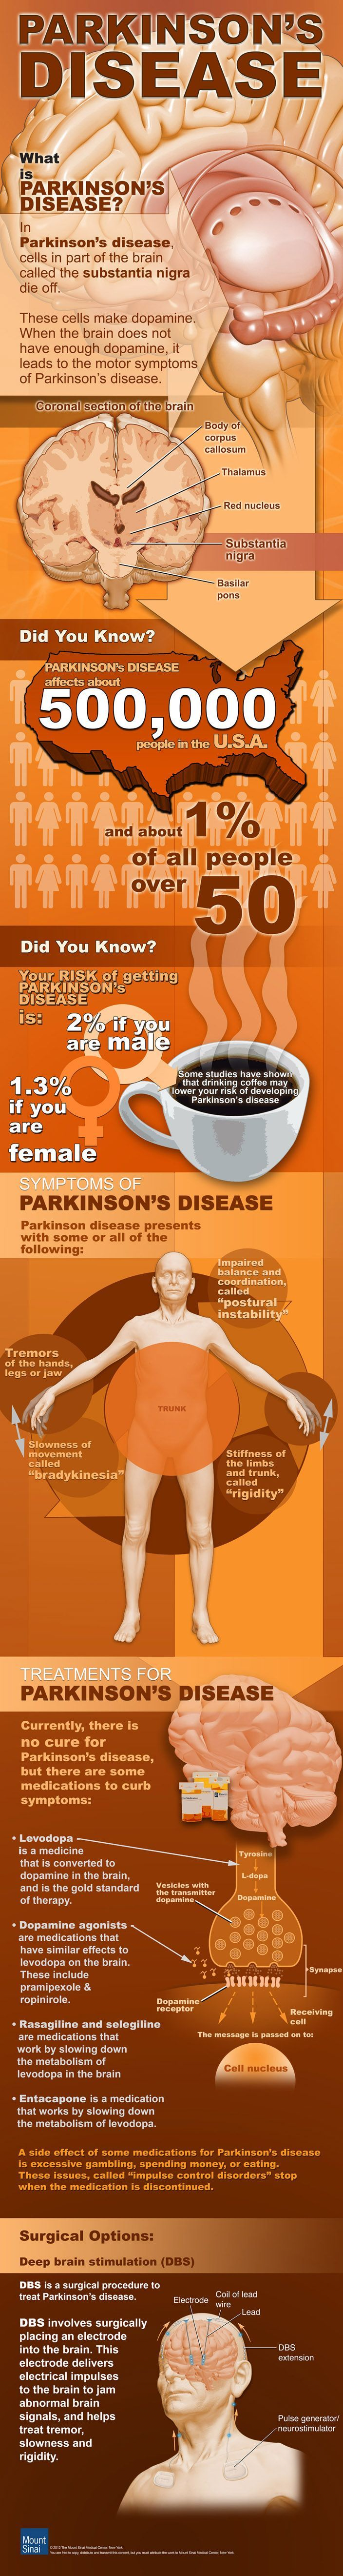 Lower Your Risk Of Parkinsons By 43